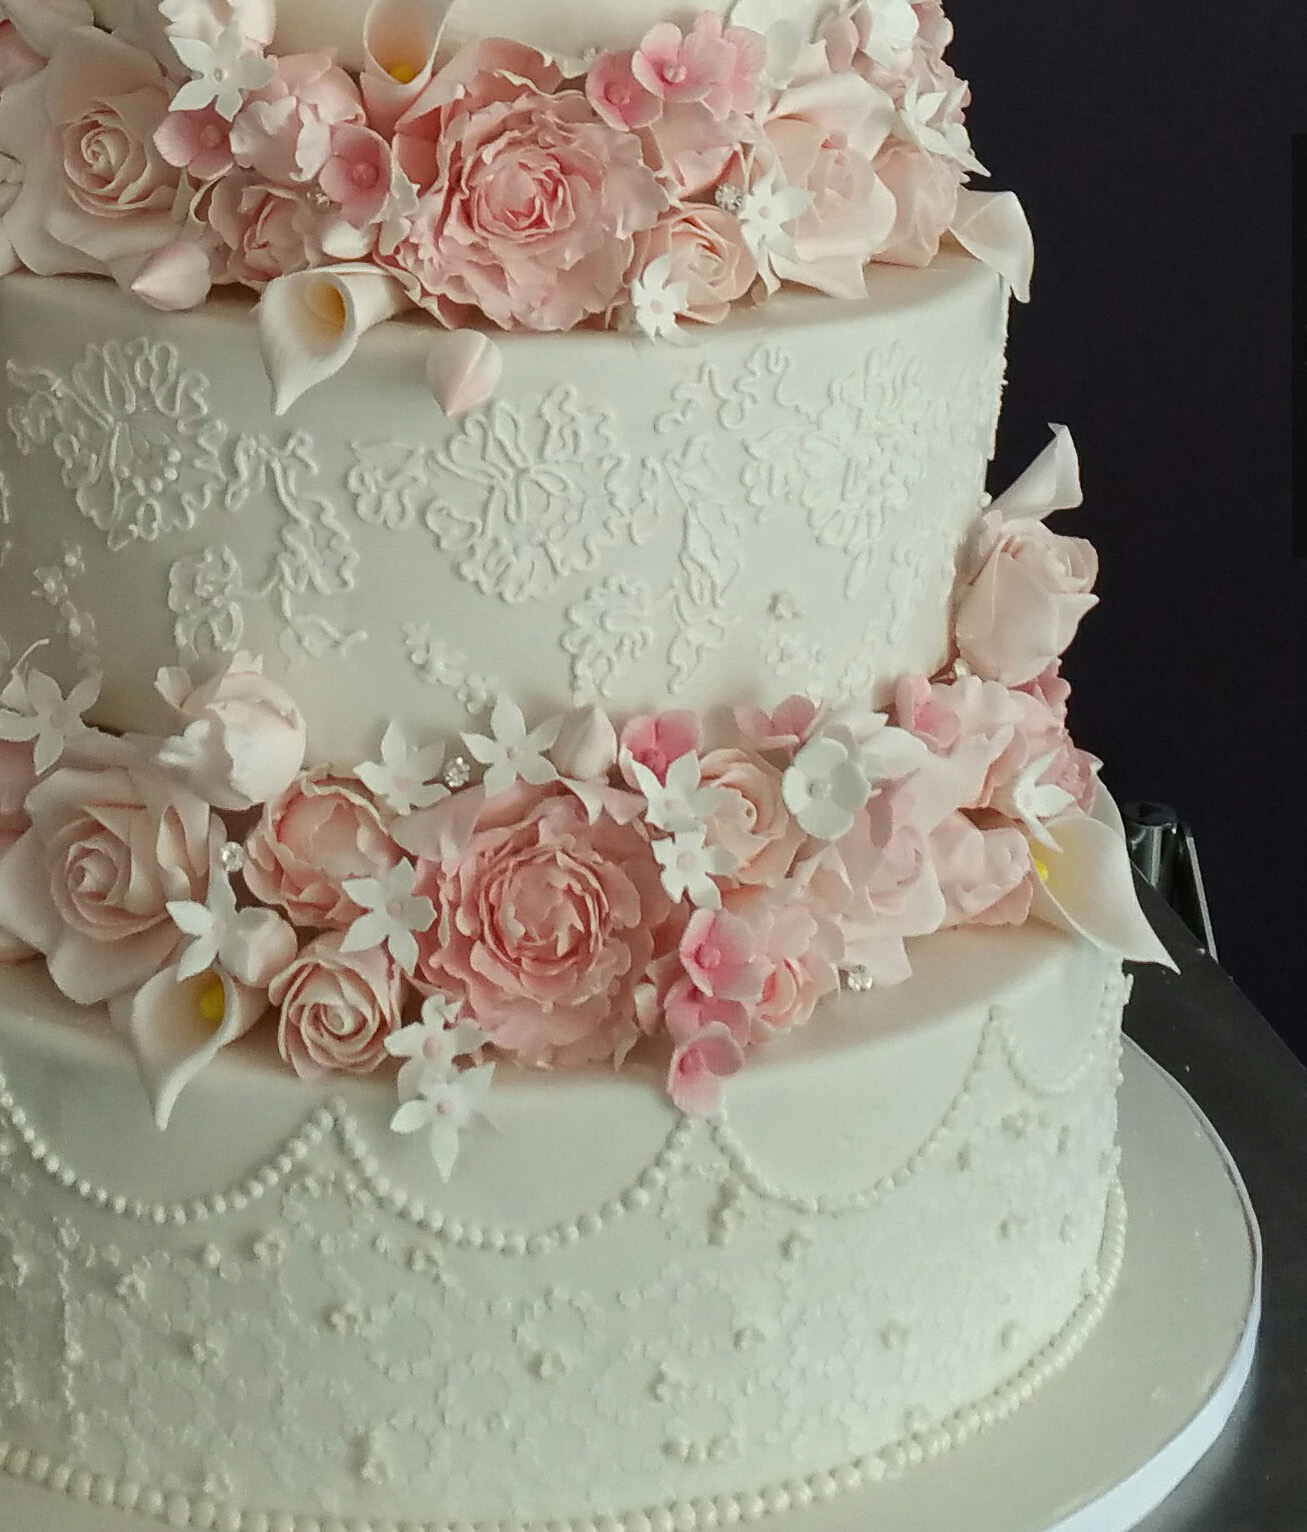 Detal closeup of intricate wedding cake by My Daughter's Cakes